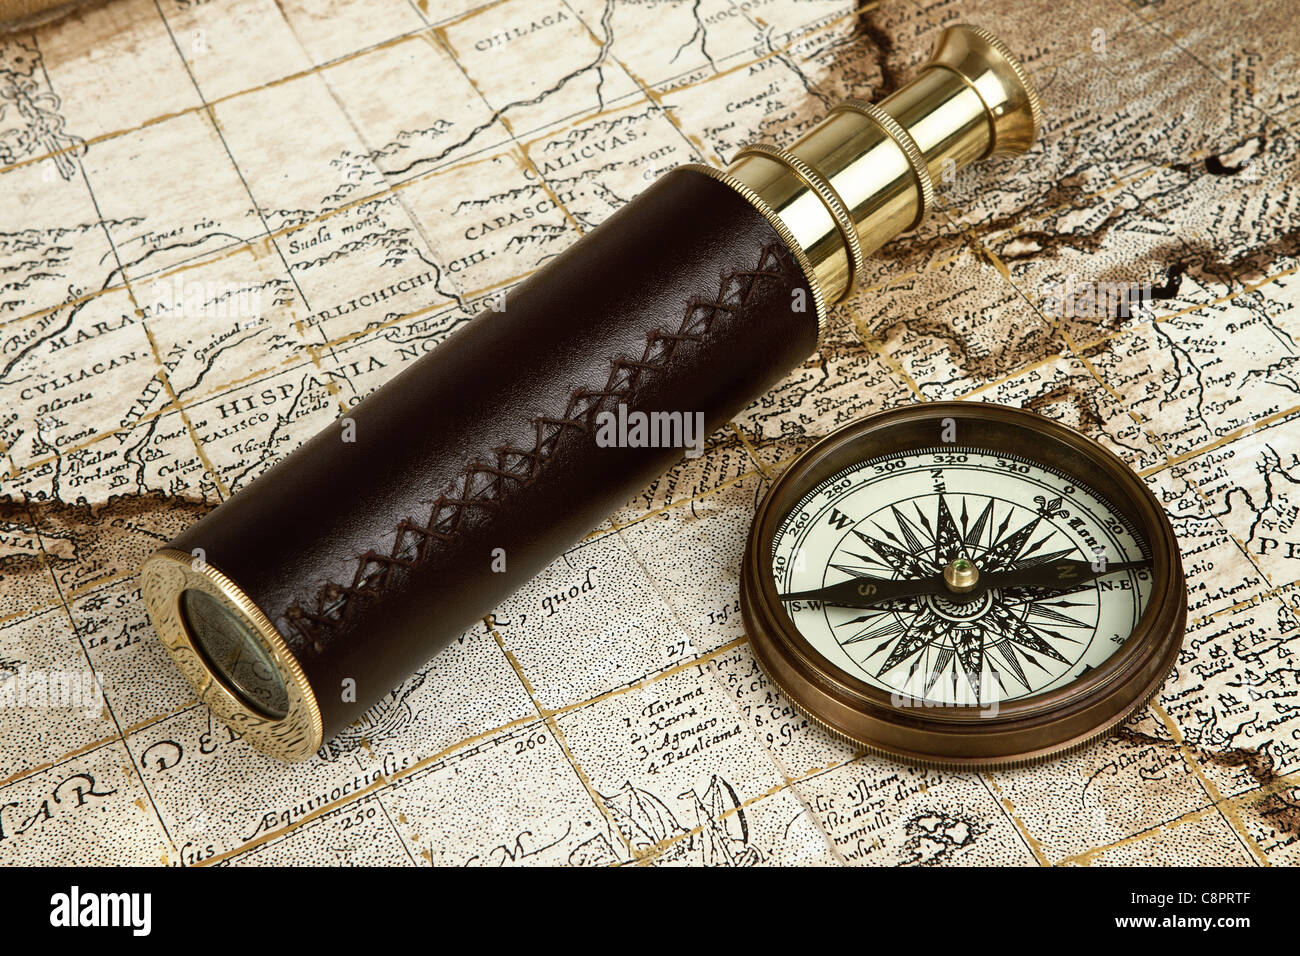 Vintage brass telescope and compass over antique map - Stock Image